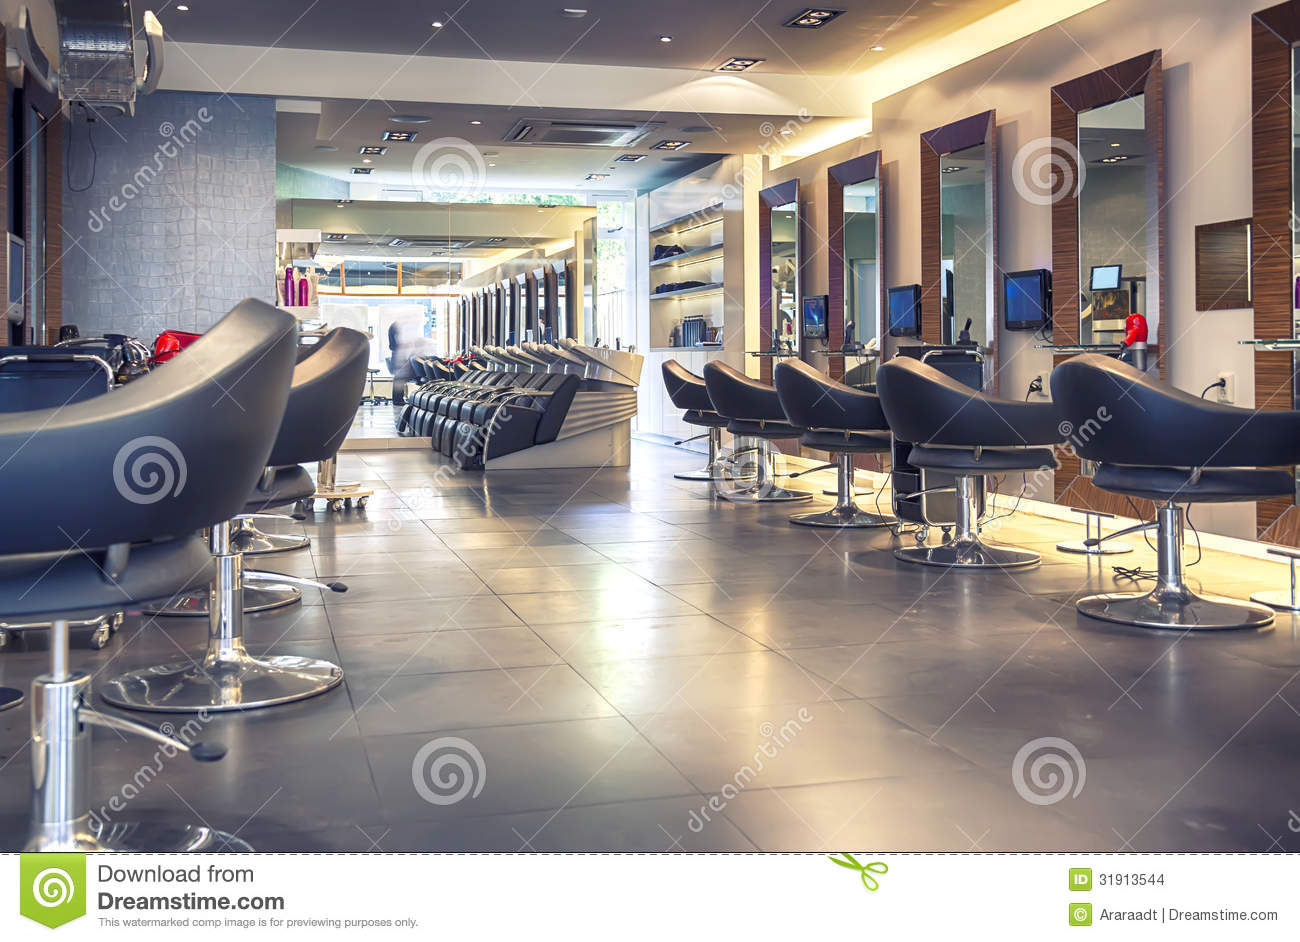 Salon de coiffure moderne photo stock. Image du indoors ...